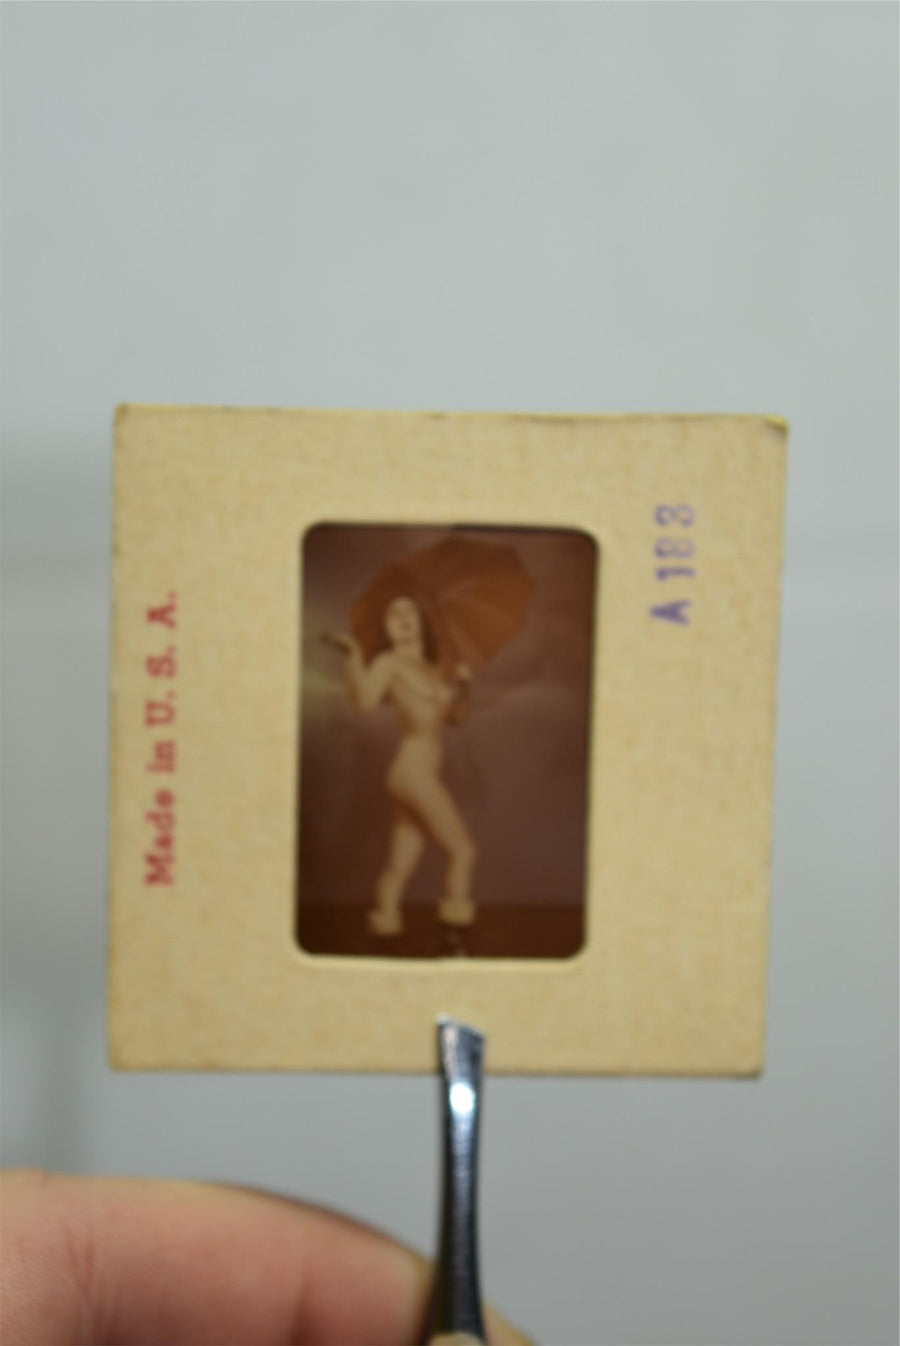 Naked Pinup Transparent Mail Order Slide 1950s Burlesque Girl Negative Umbrella